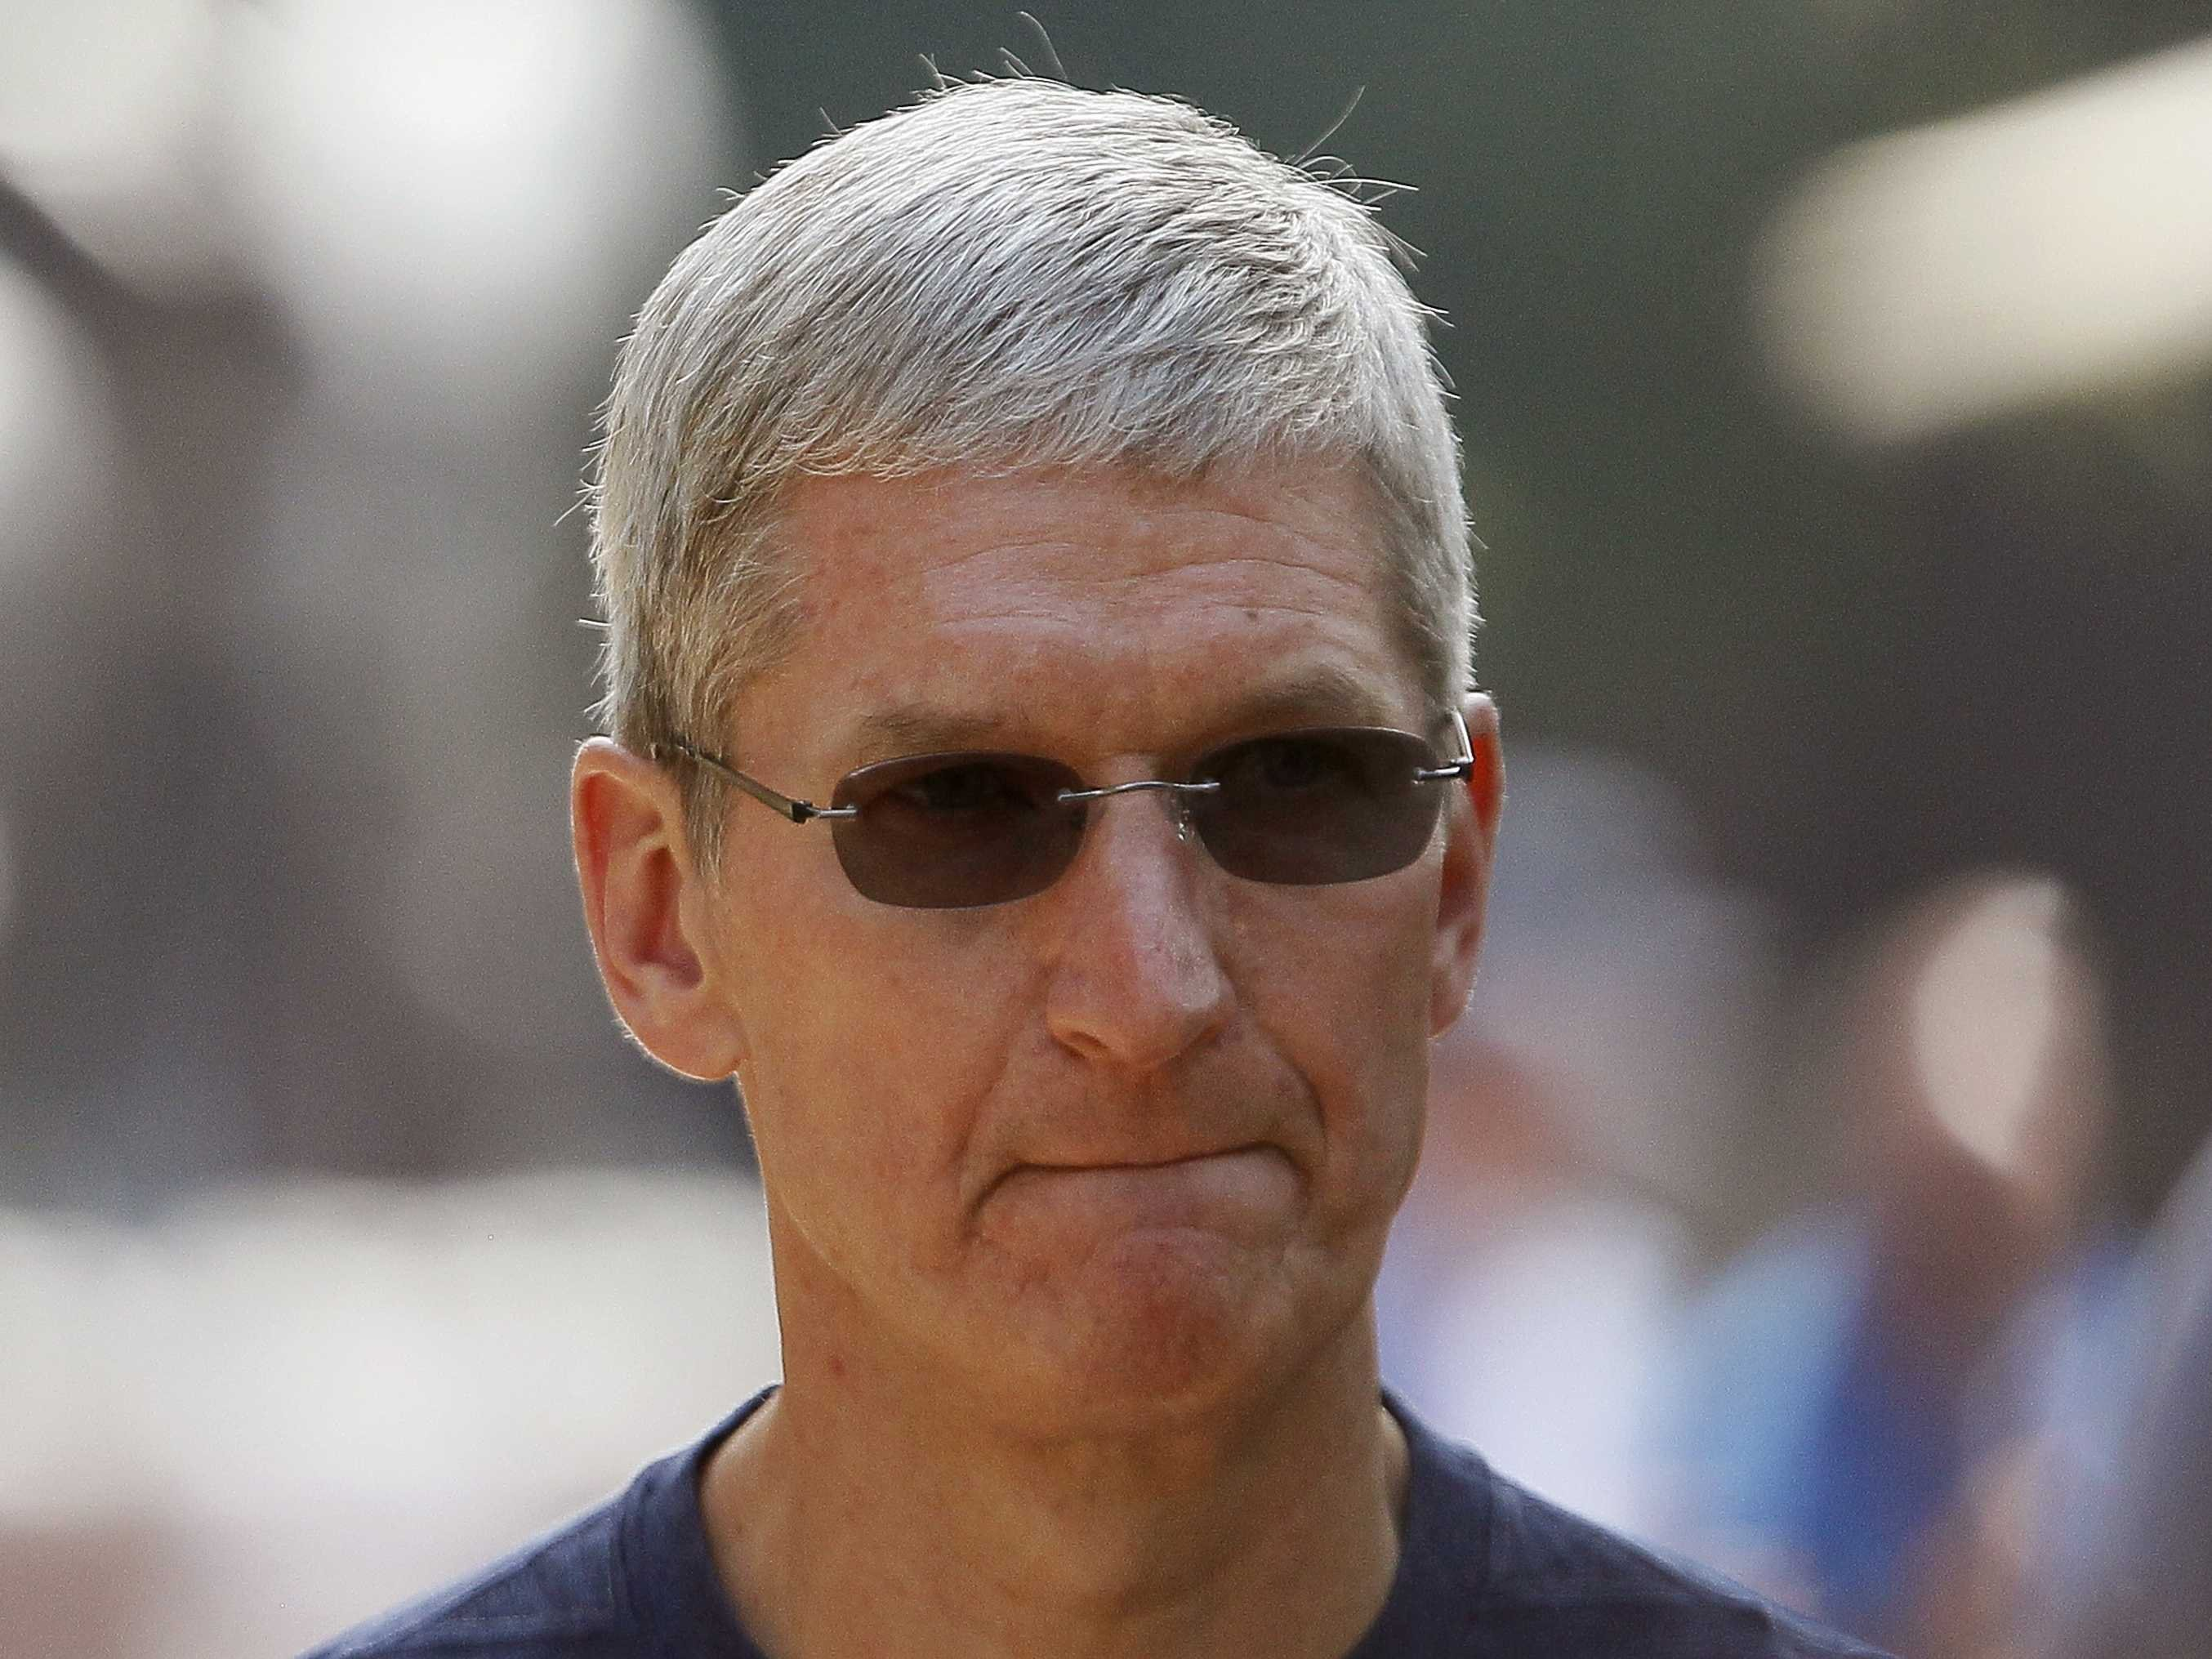 tim-cook-in-shades